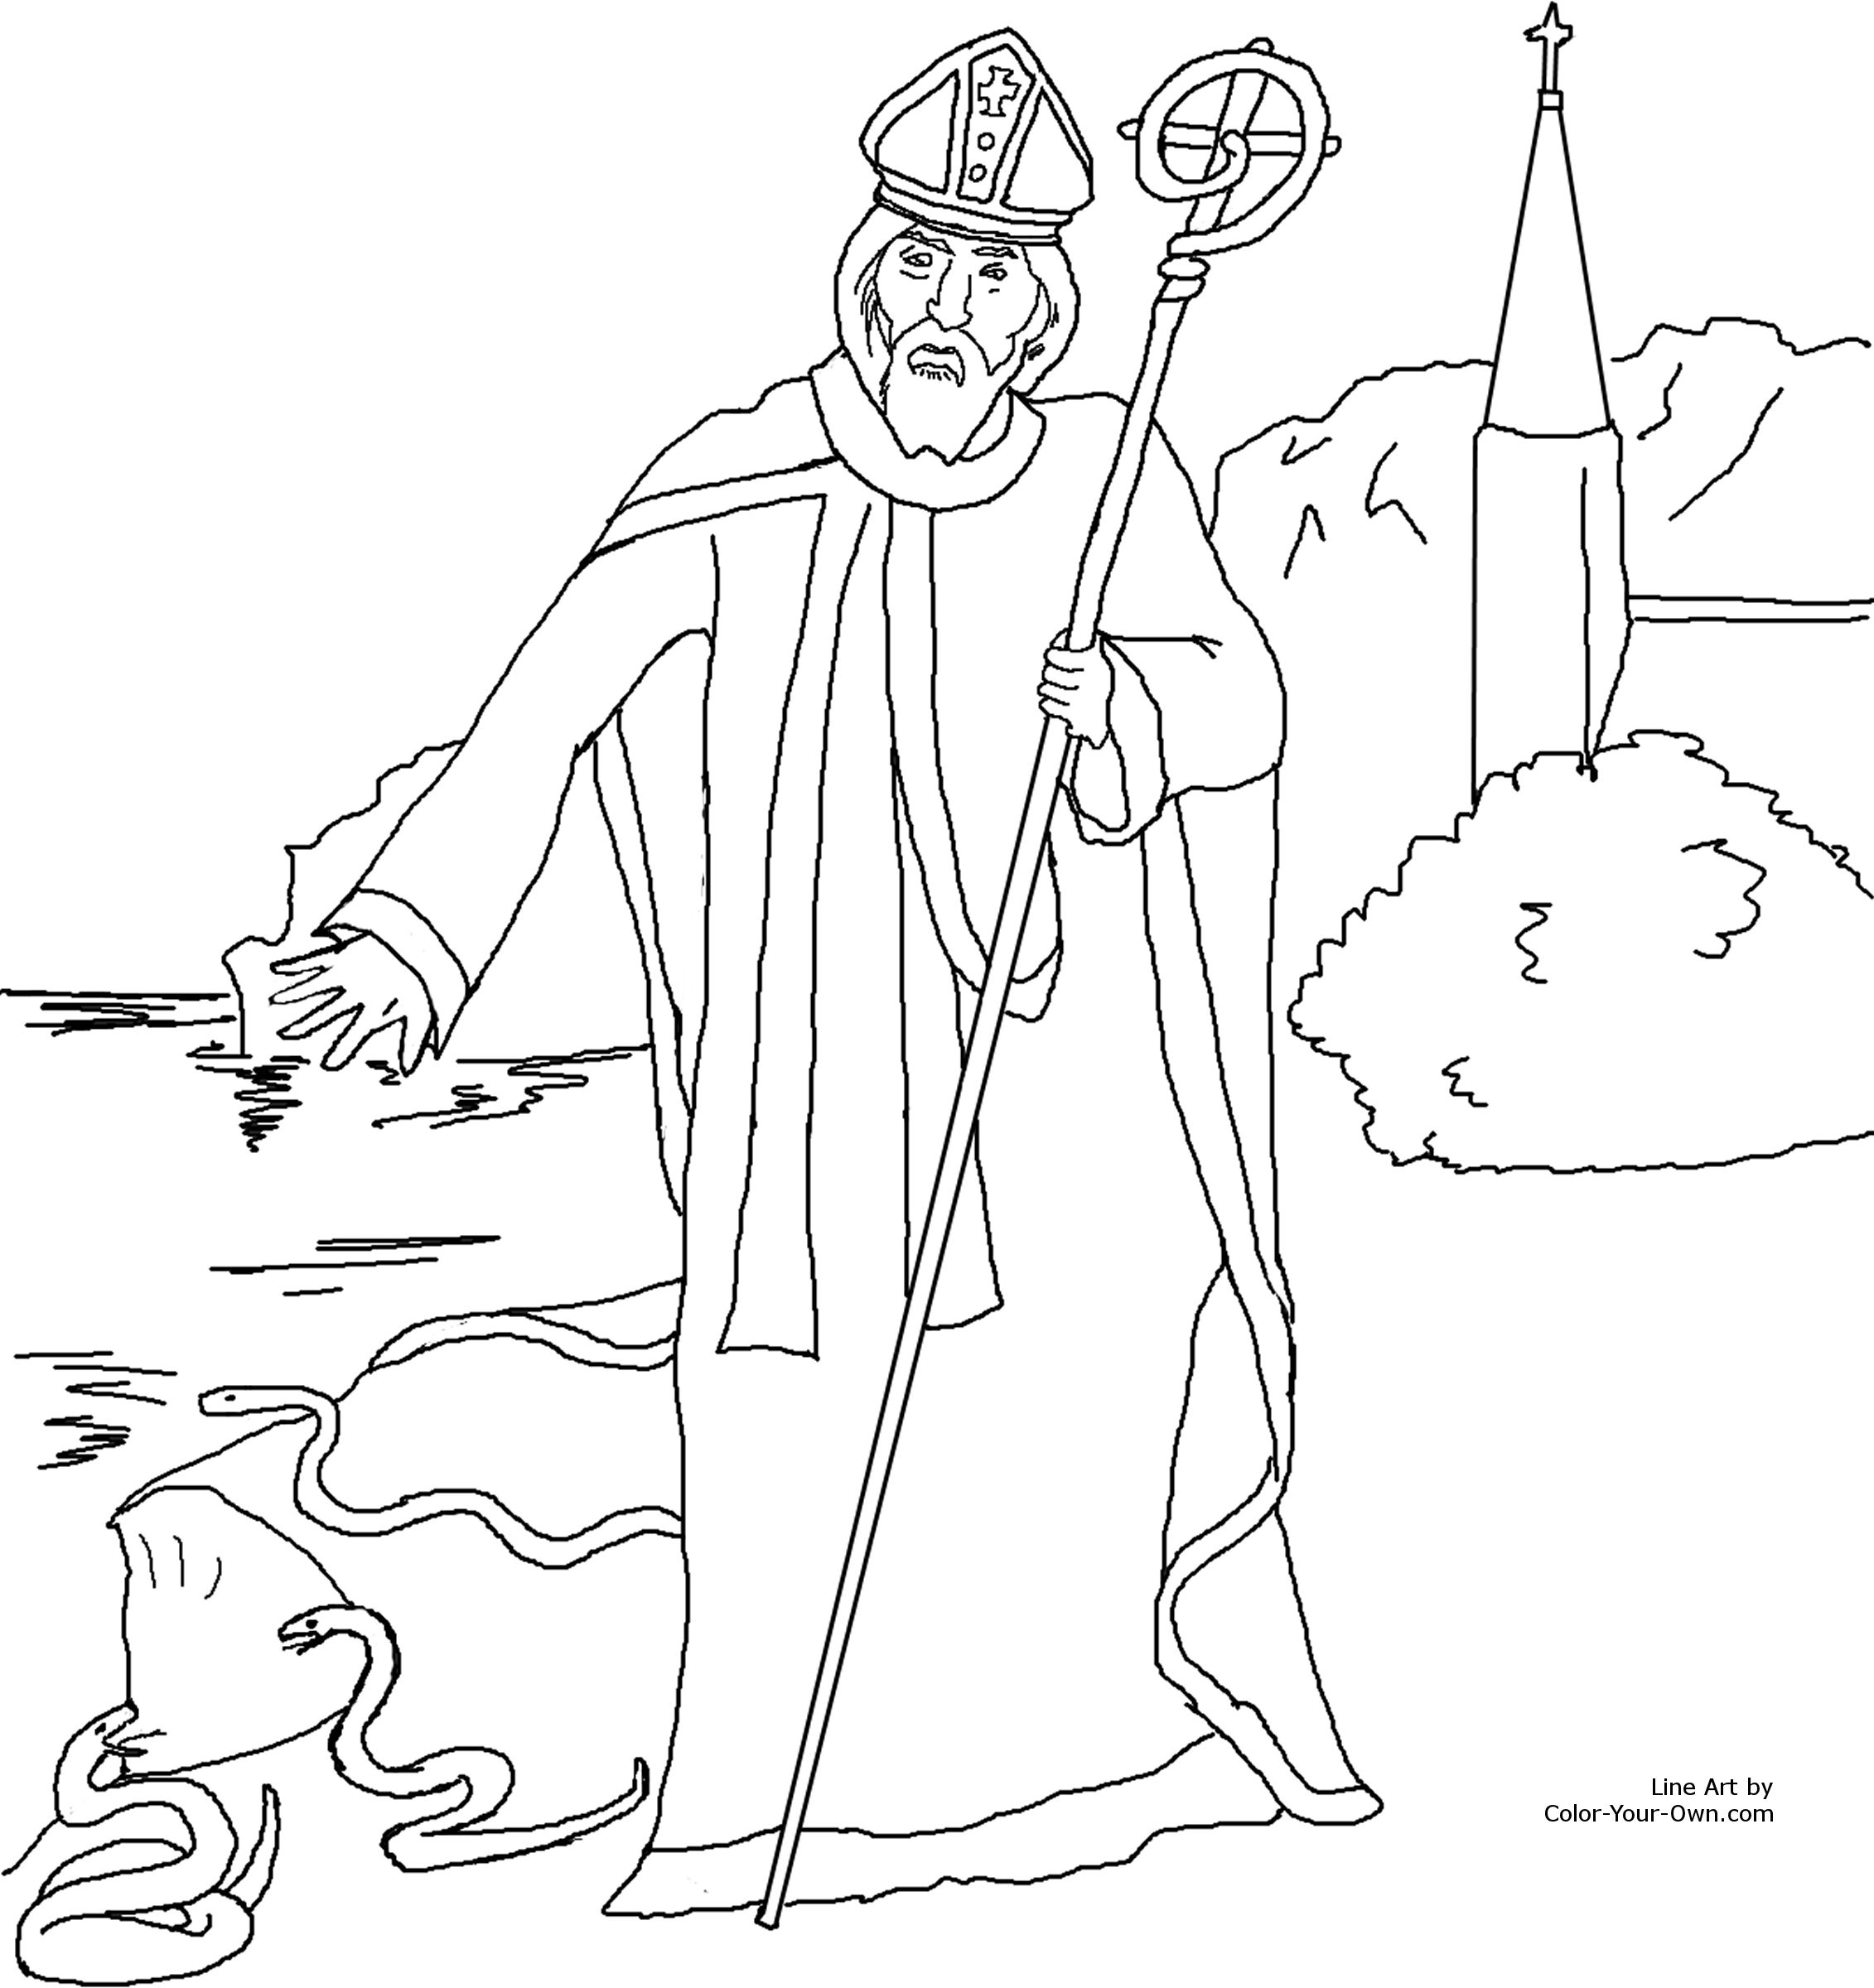 Saint Patrick Coloring Page - Coloring Pages